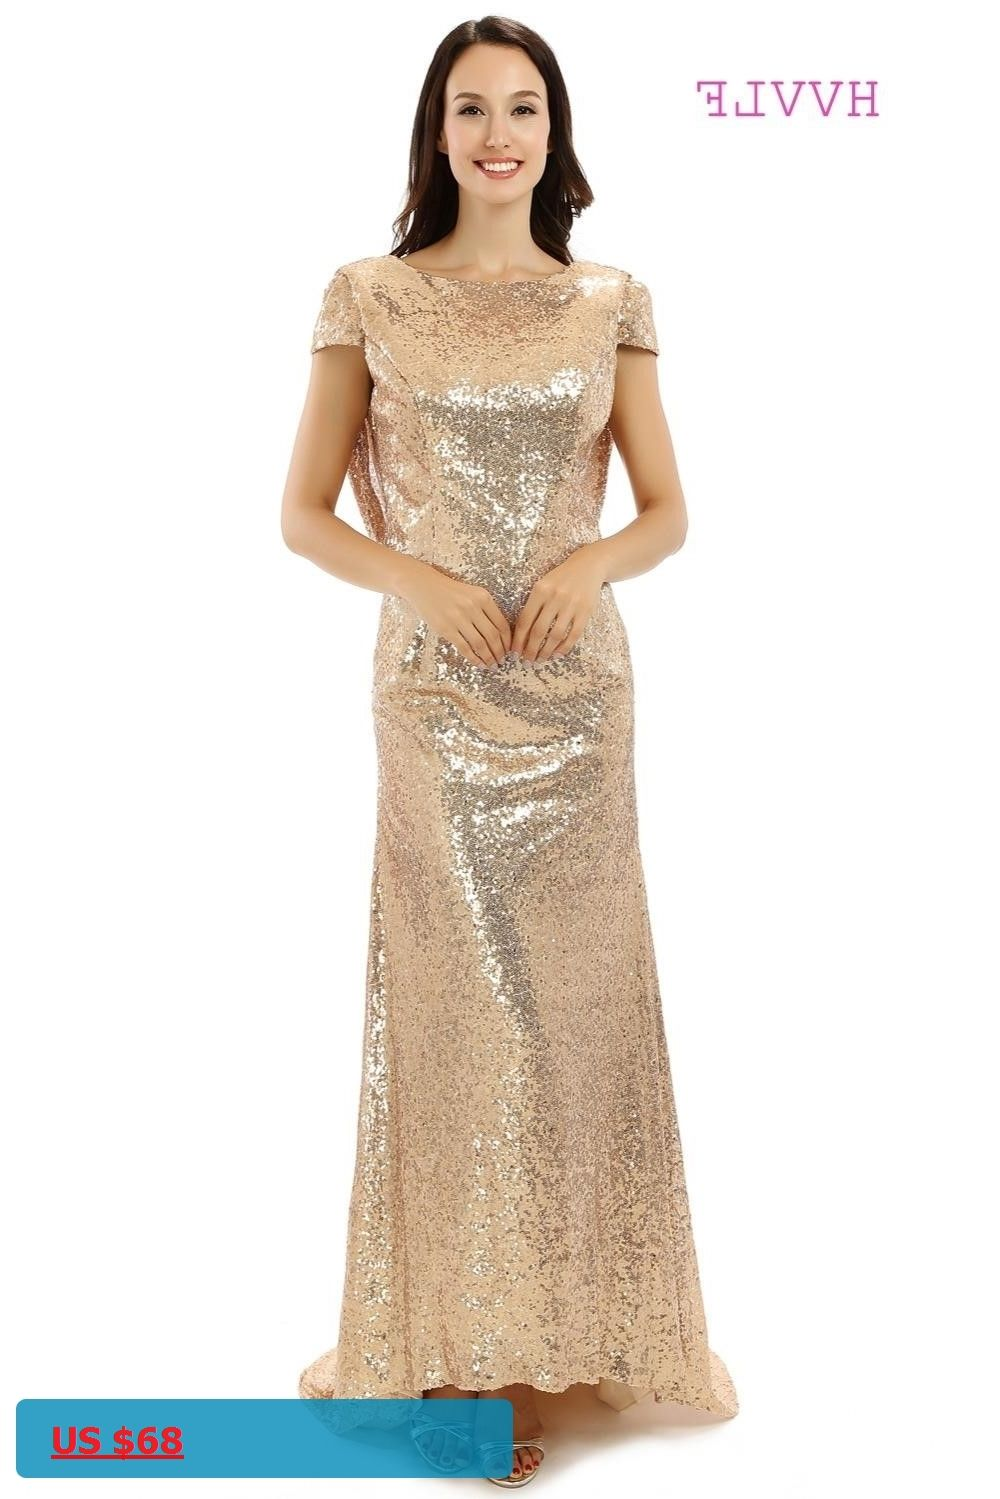 Backless 2018 cheap bridesmaid dresses under 50 mermaid cap sleeves backless 2018 cheap bridesmaid dresses under 50 mermaid cap sleeves sequins sparkle champagne long wedding party ombrellifo Choice Image